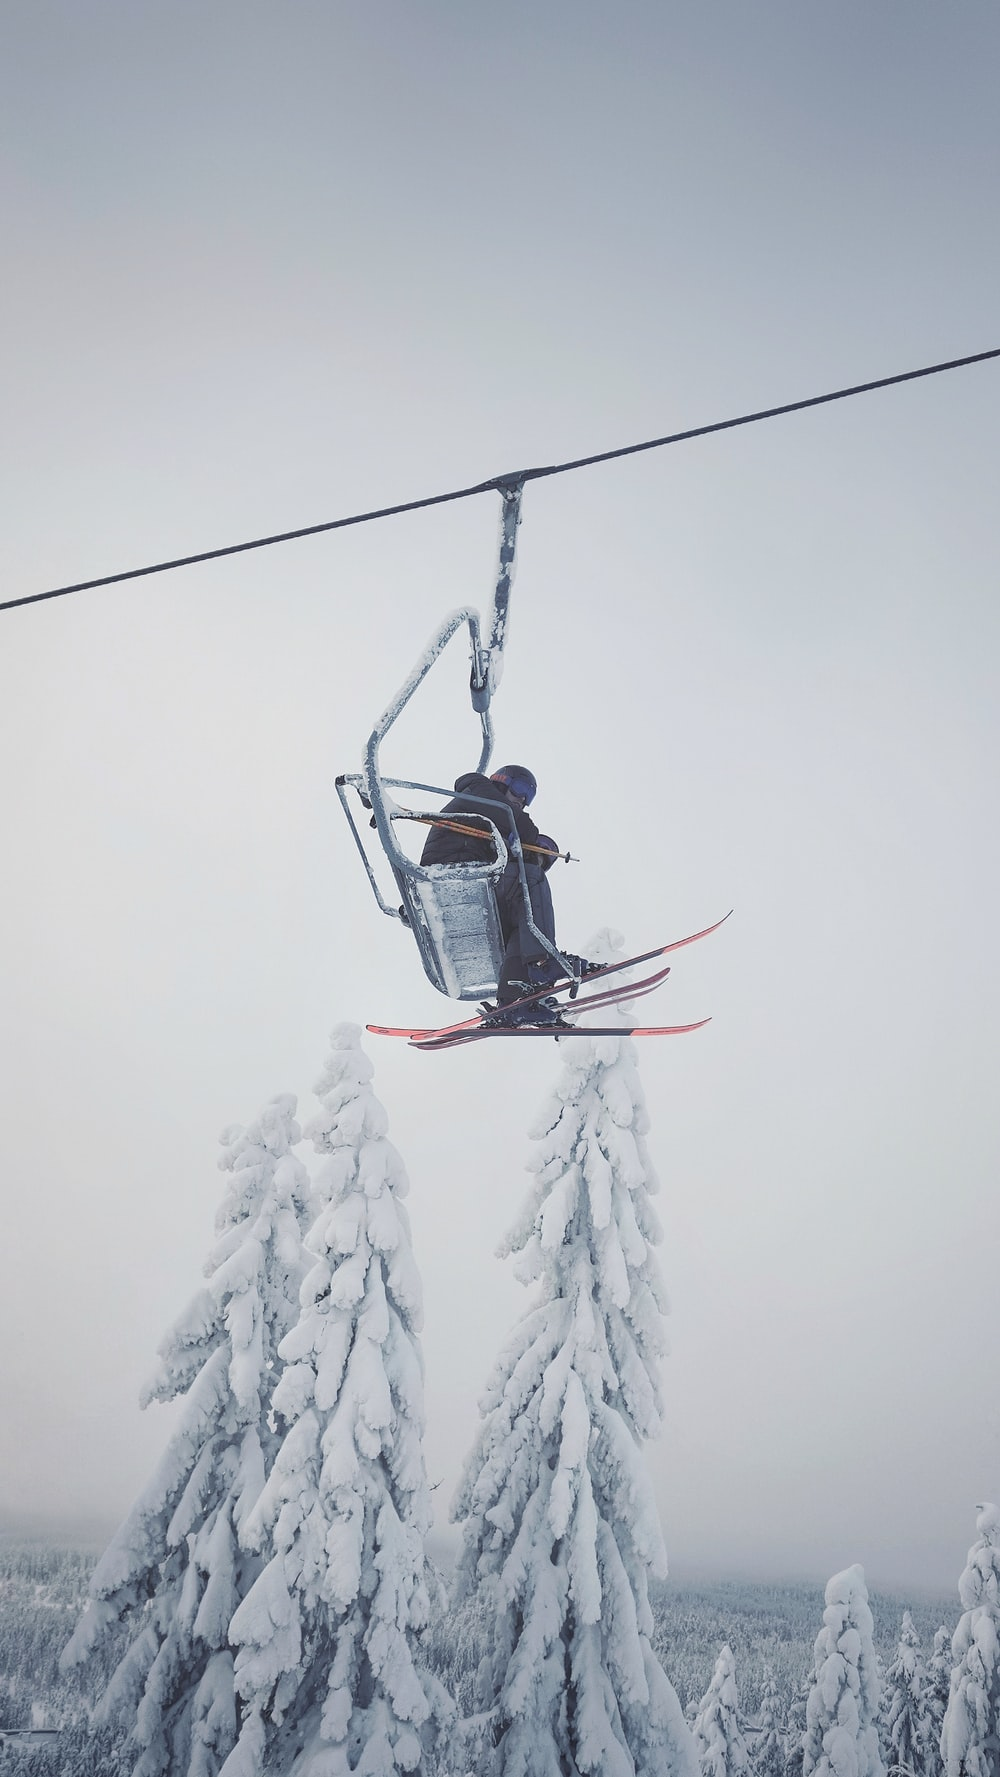 person in black jacket riding on cable car during daytime